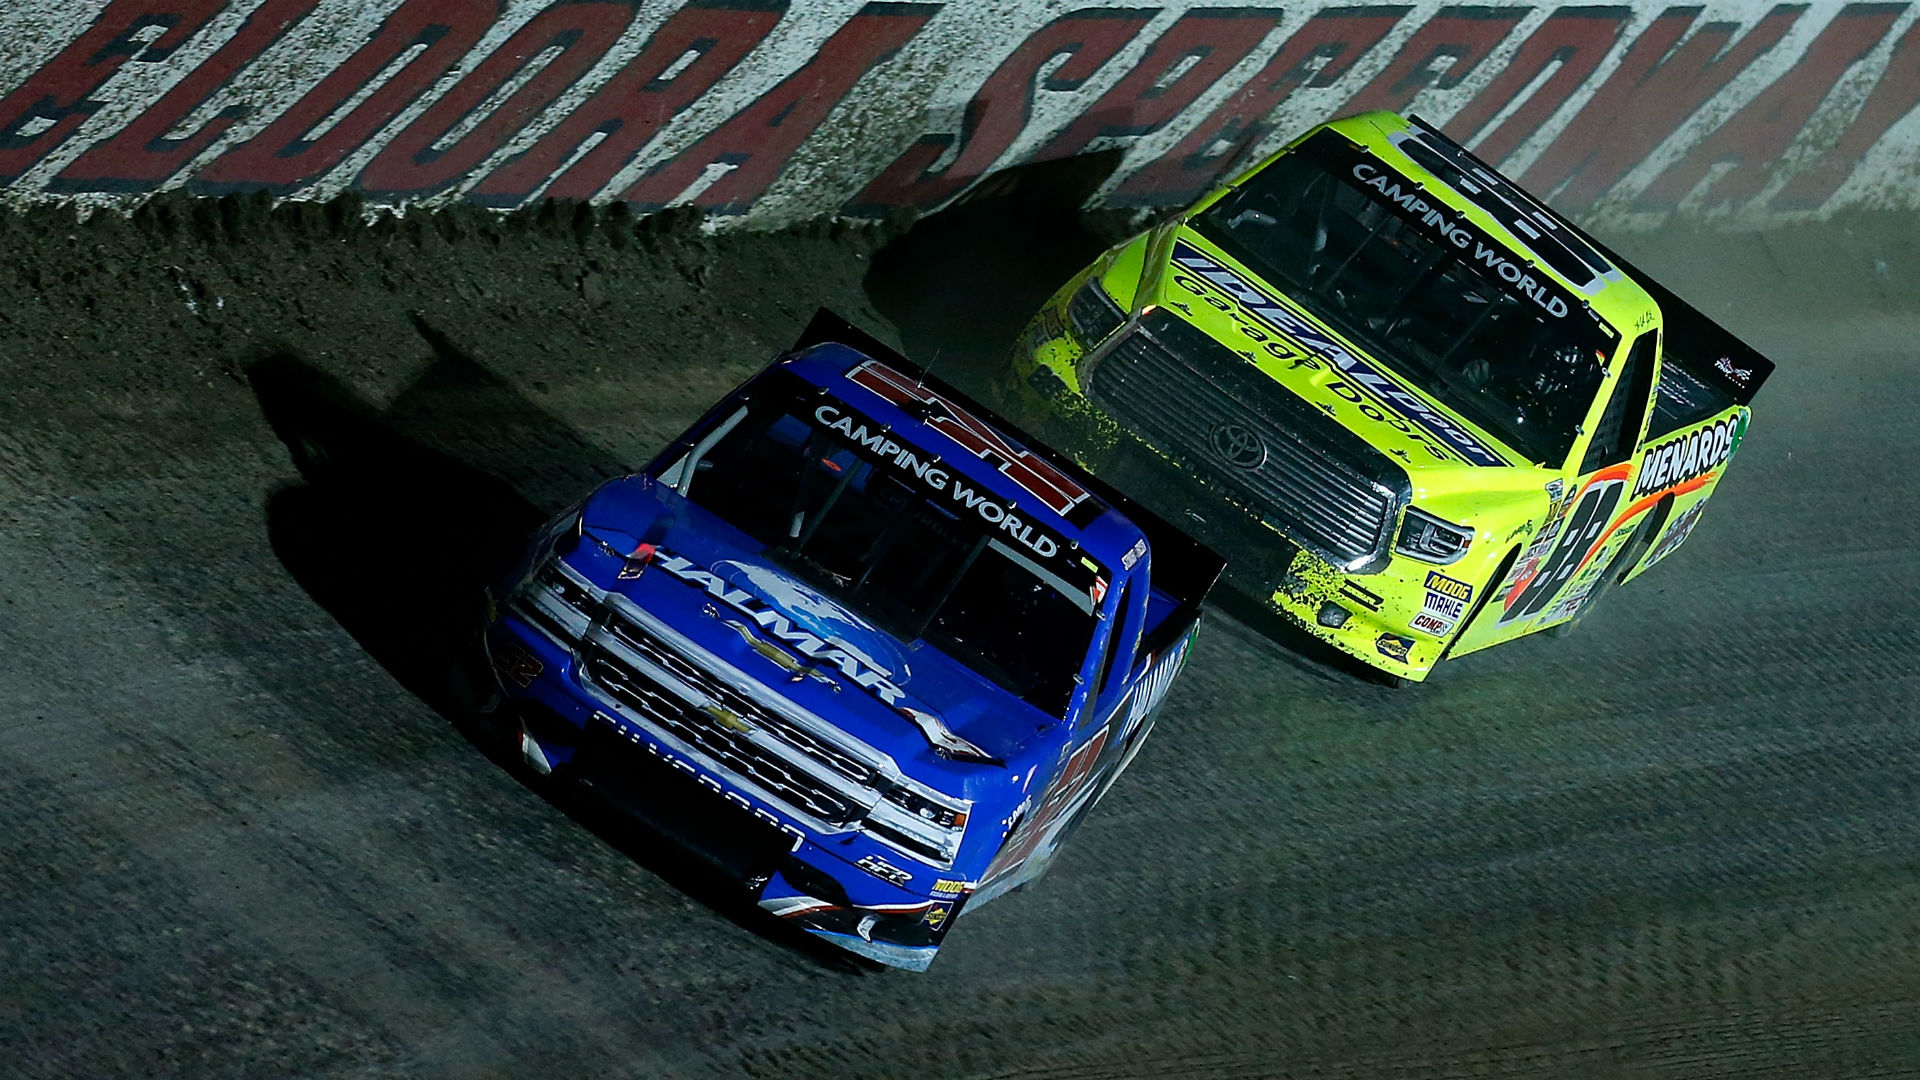 How to watch NASCAR Truck race at Eldora: TV schedule, qualifying format